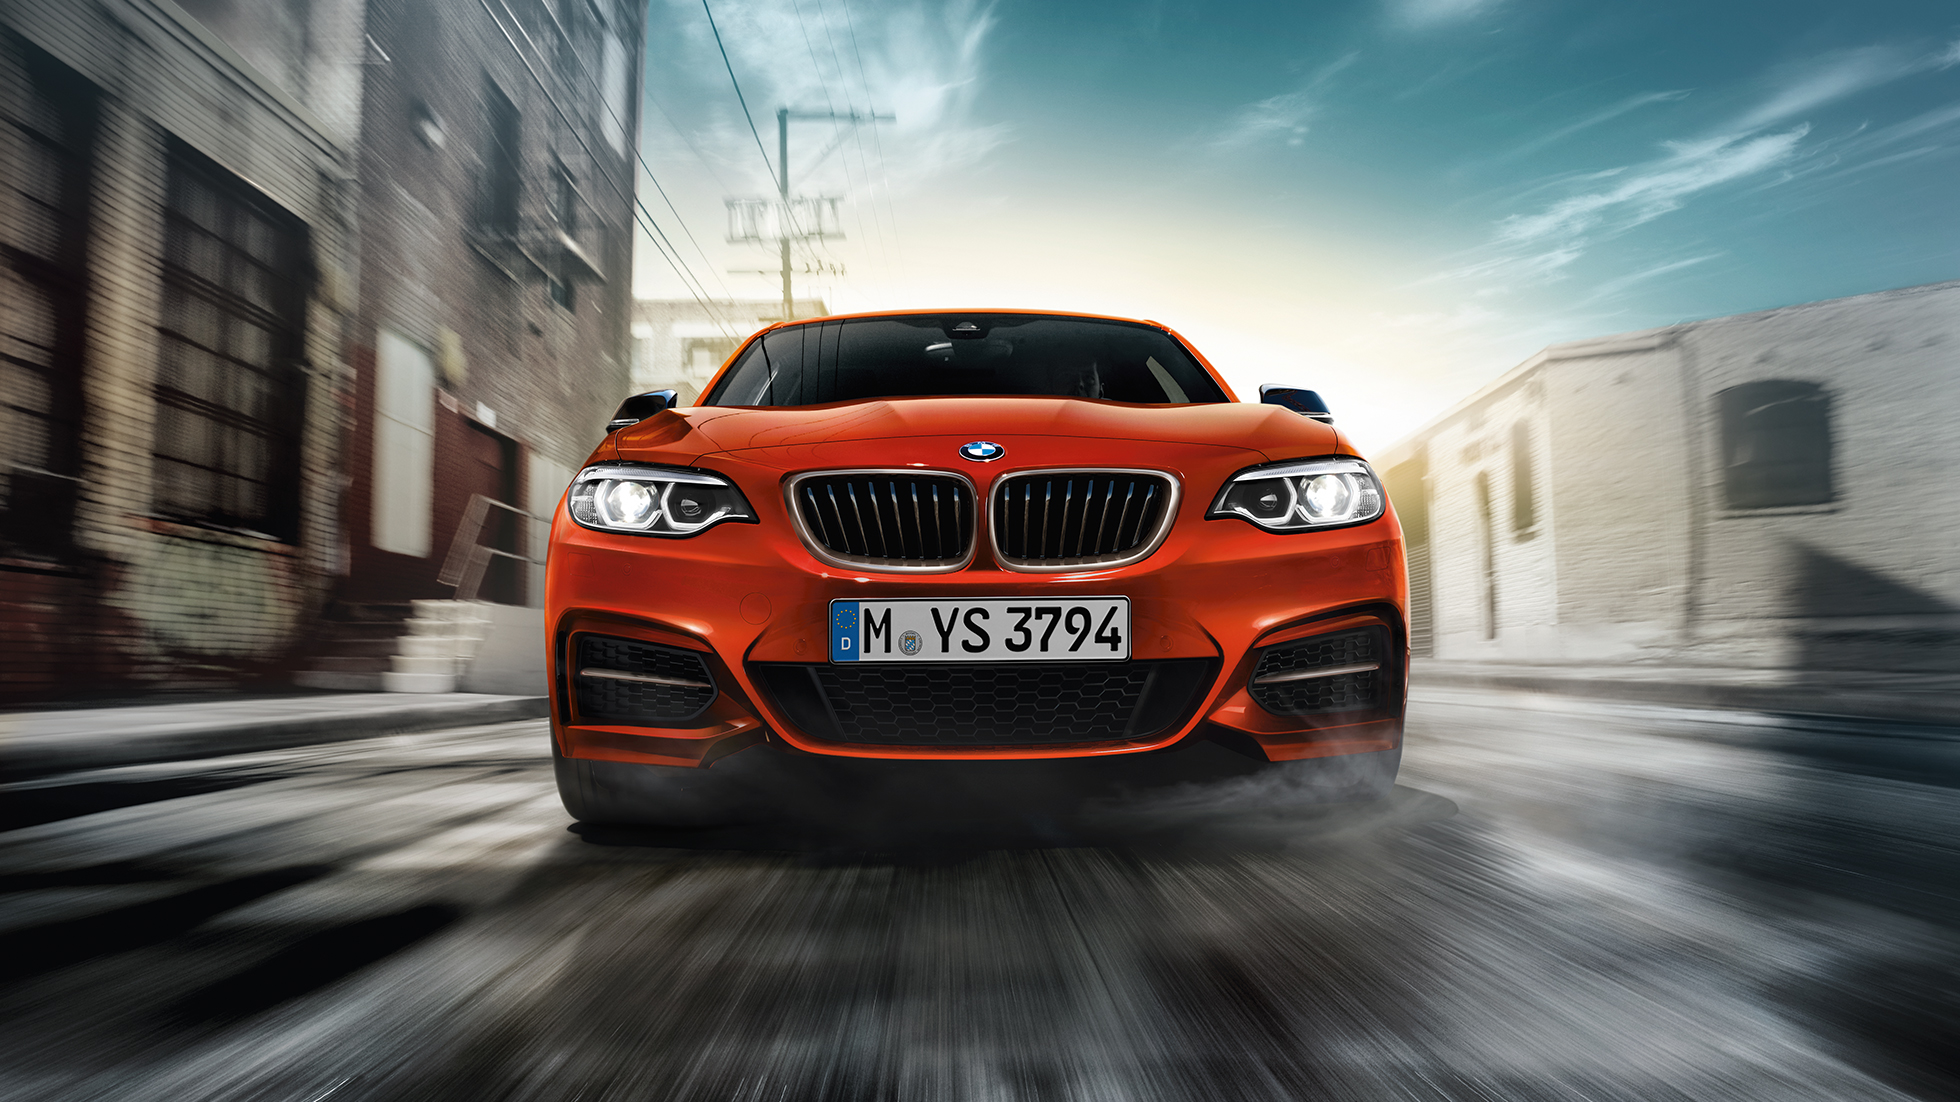 Design voorkant BMW M240i Coupé F22 2017 Sunset Orange metallic vooraanzicht